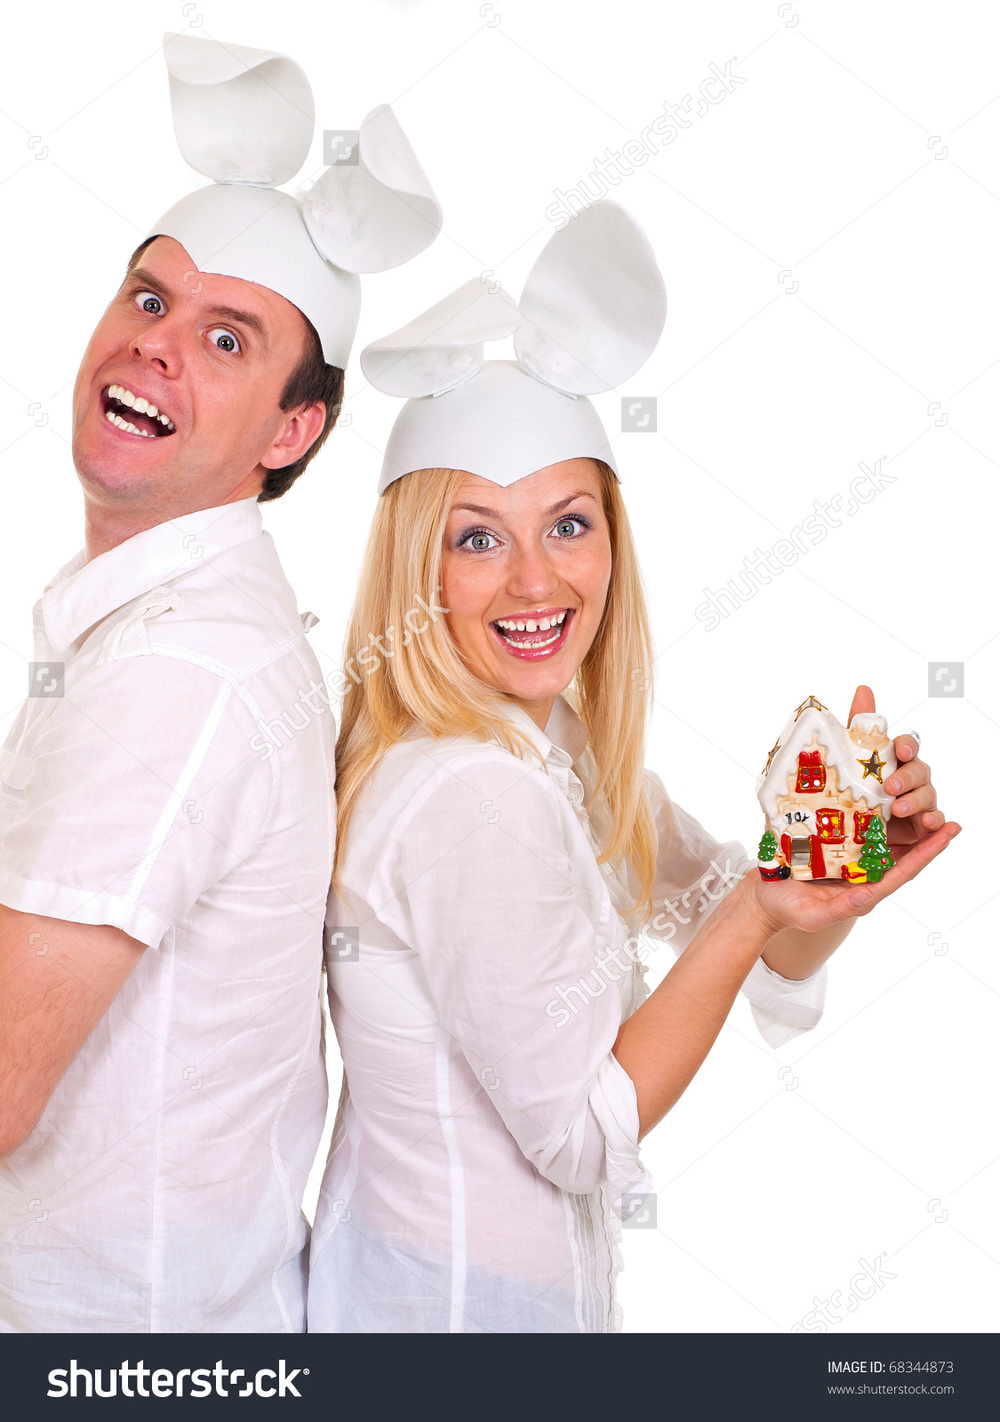 Title: Funny young couple wearing rabbit hats Seems like a perfectly normal couple.